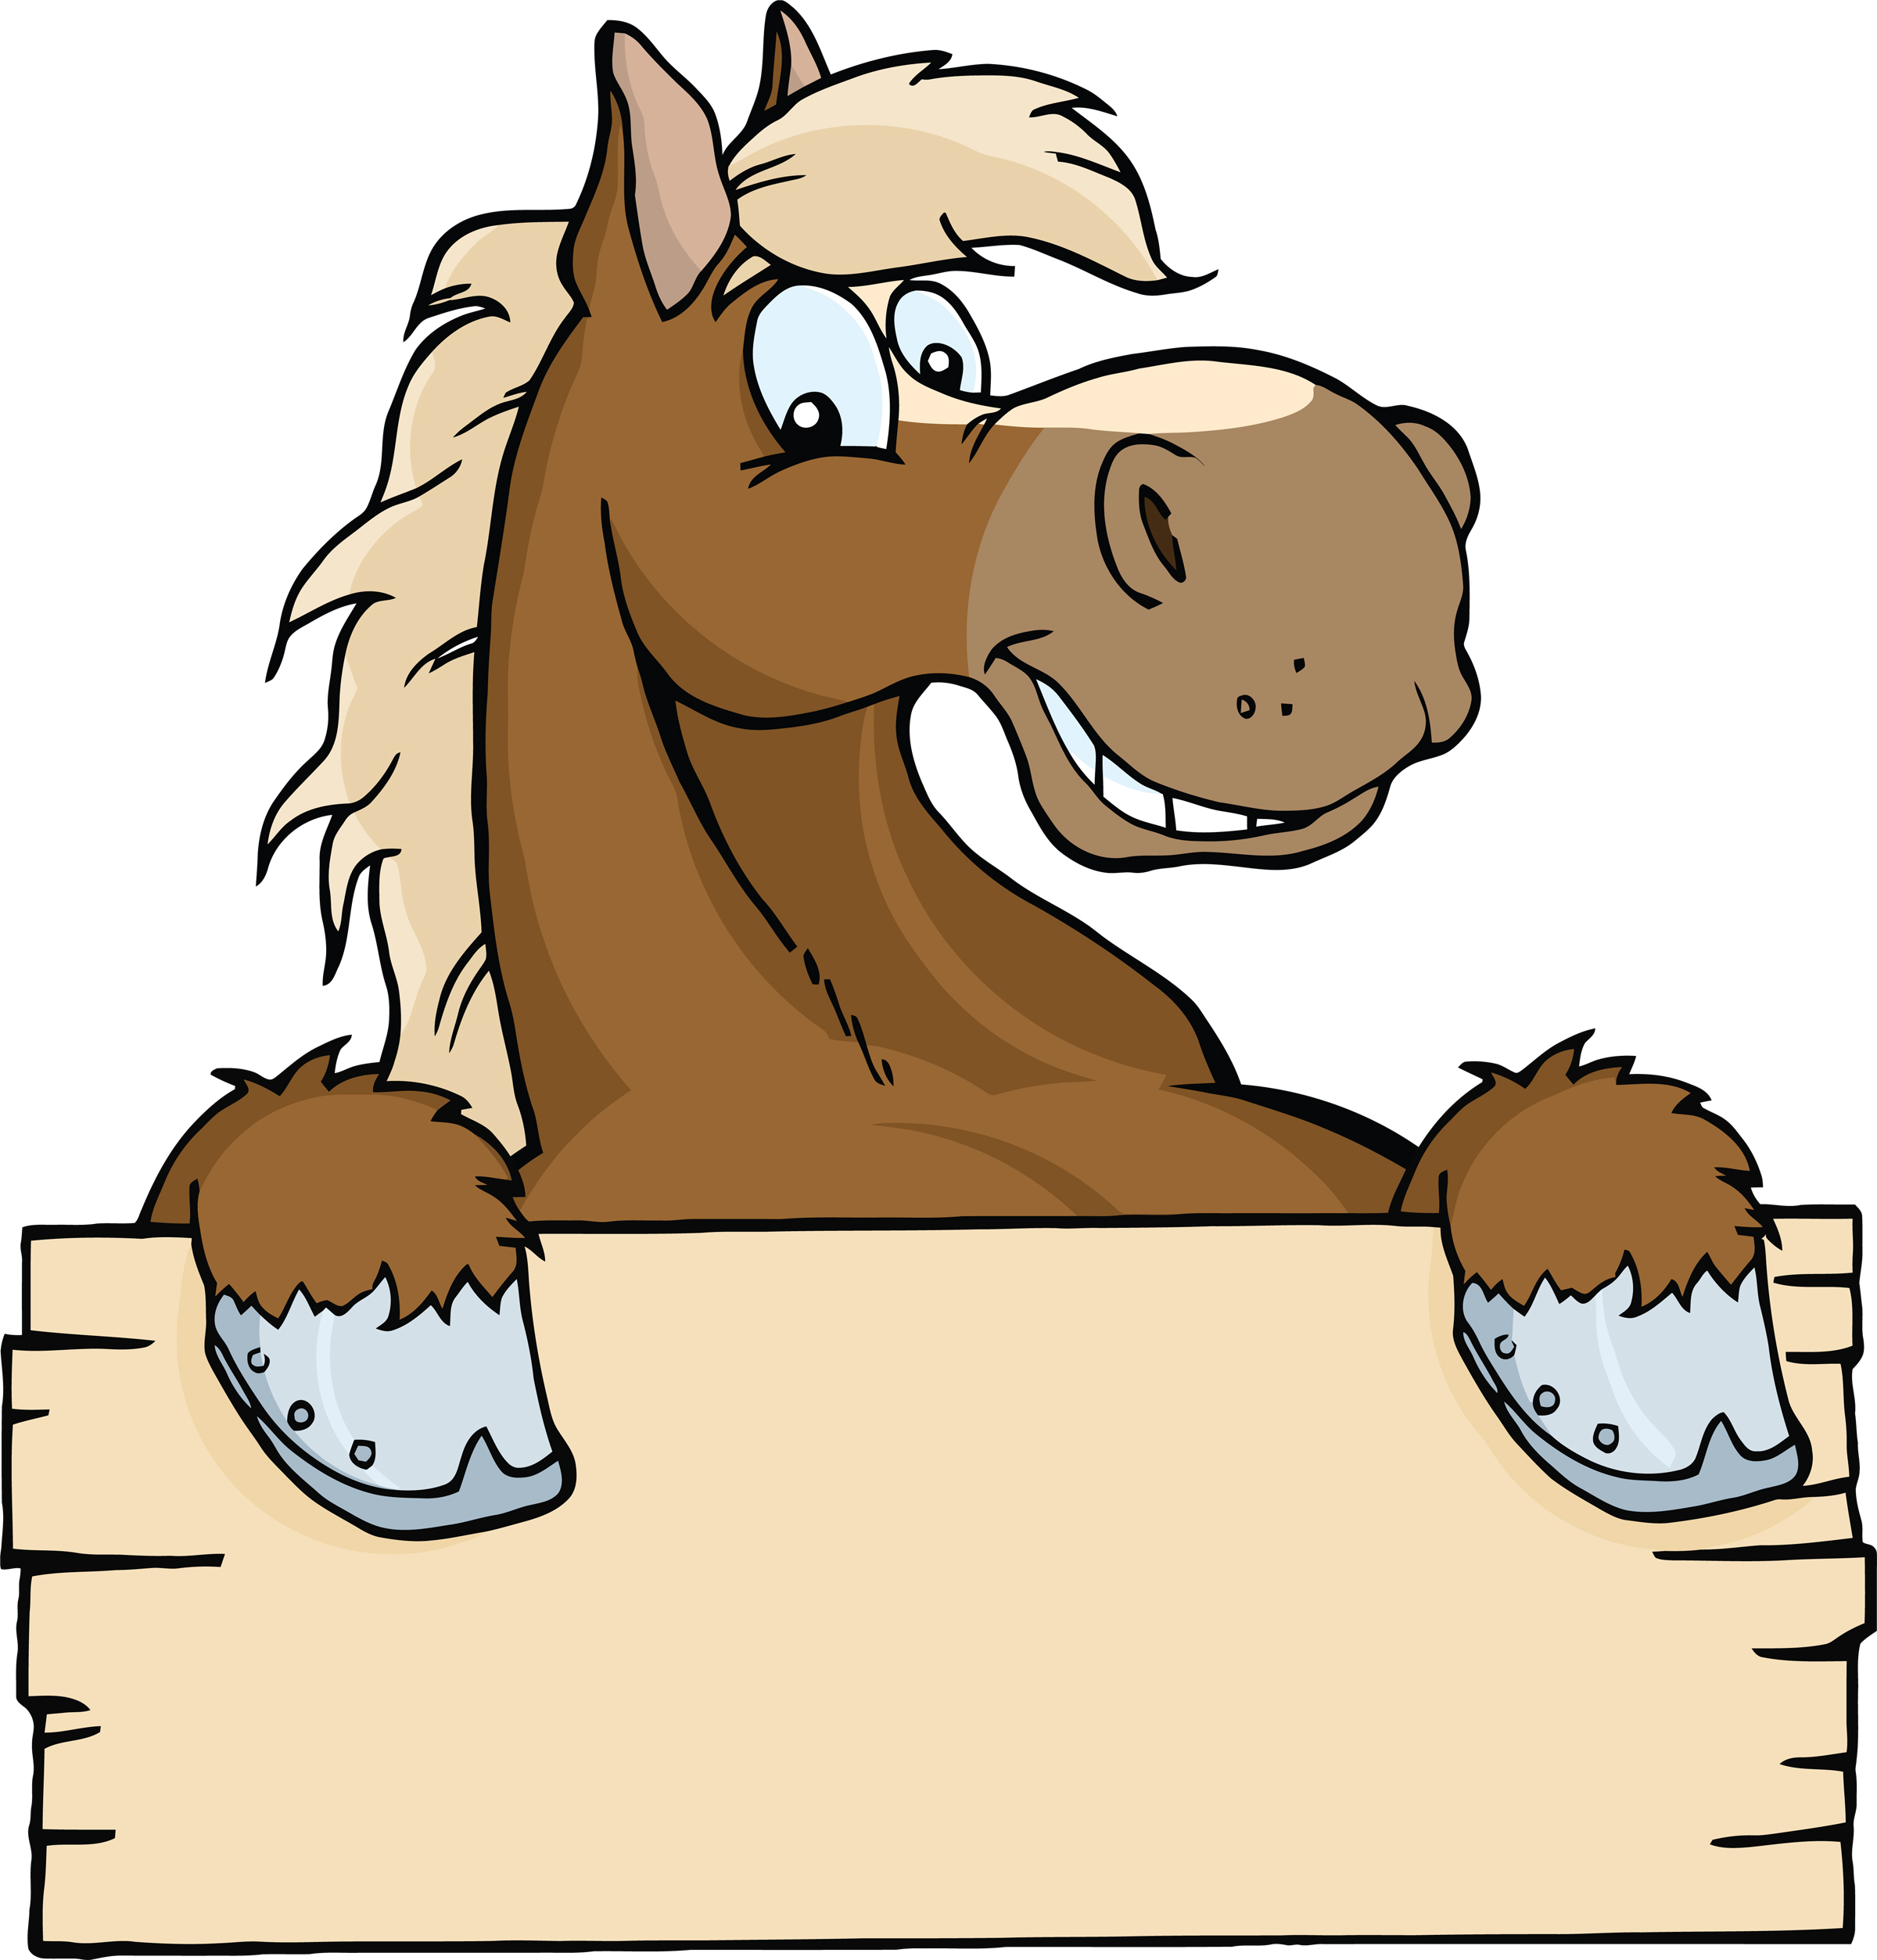 Hand Drawn Horse Illustration Galloping Horse Take The Lead Nonstop, Fast  Horse, Prancing Horse, Running Horse PNG Transparent Clipart Image and PSD  File for Free Download